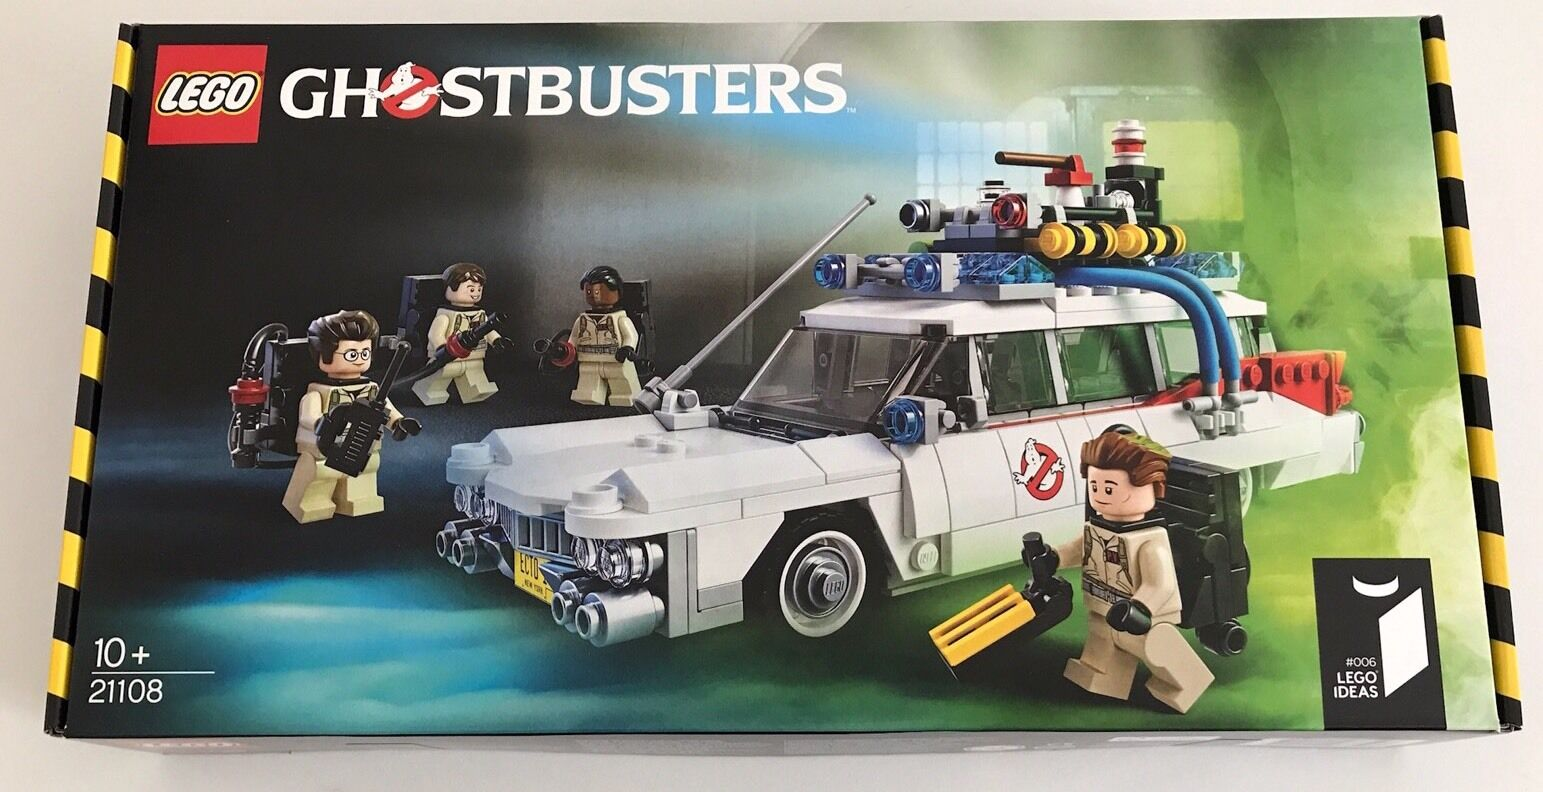 LEGO - Ideas - Ghostbusters ECTO-1 - 21108 - BRAND NEW, FREE POSTAGE